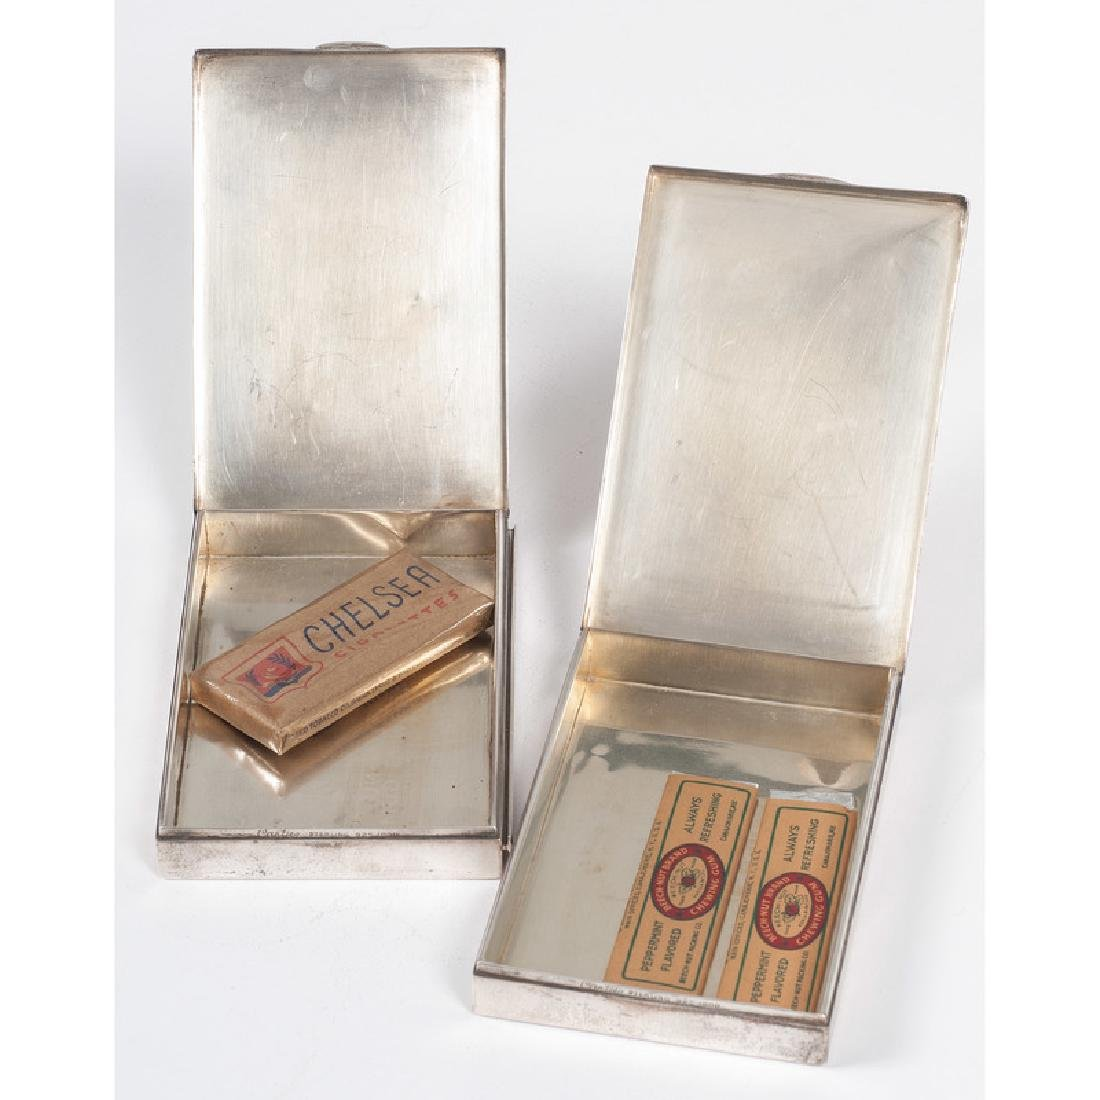 Cartier Sterling Silver Cigarette Boxes - 3